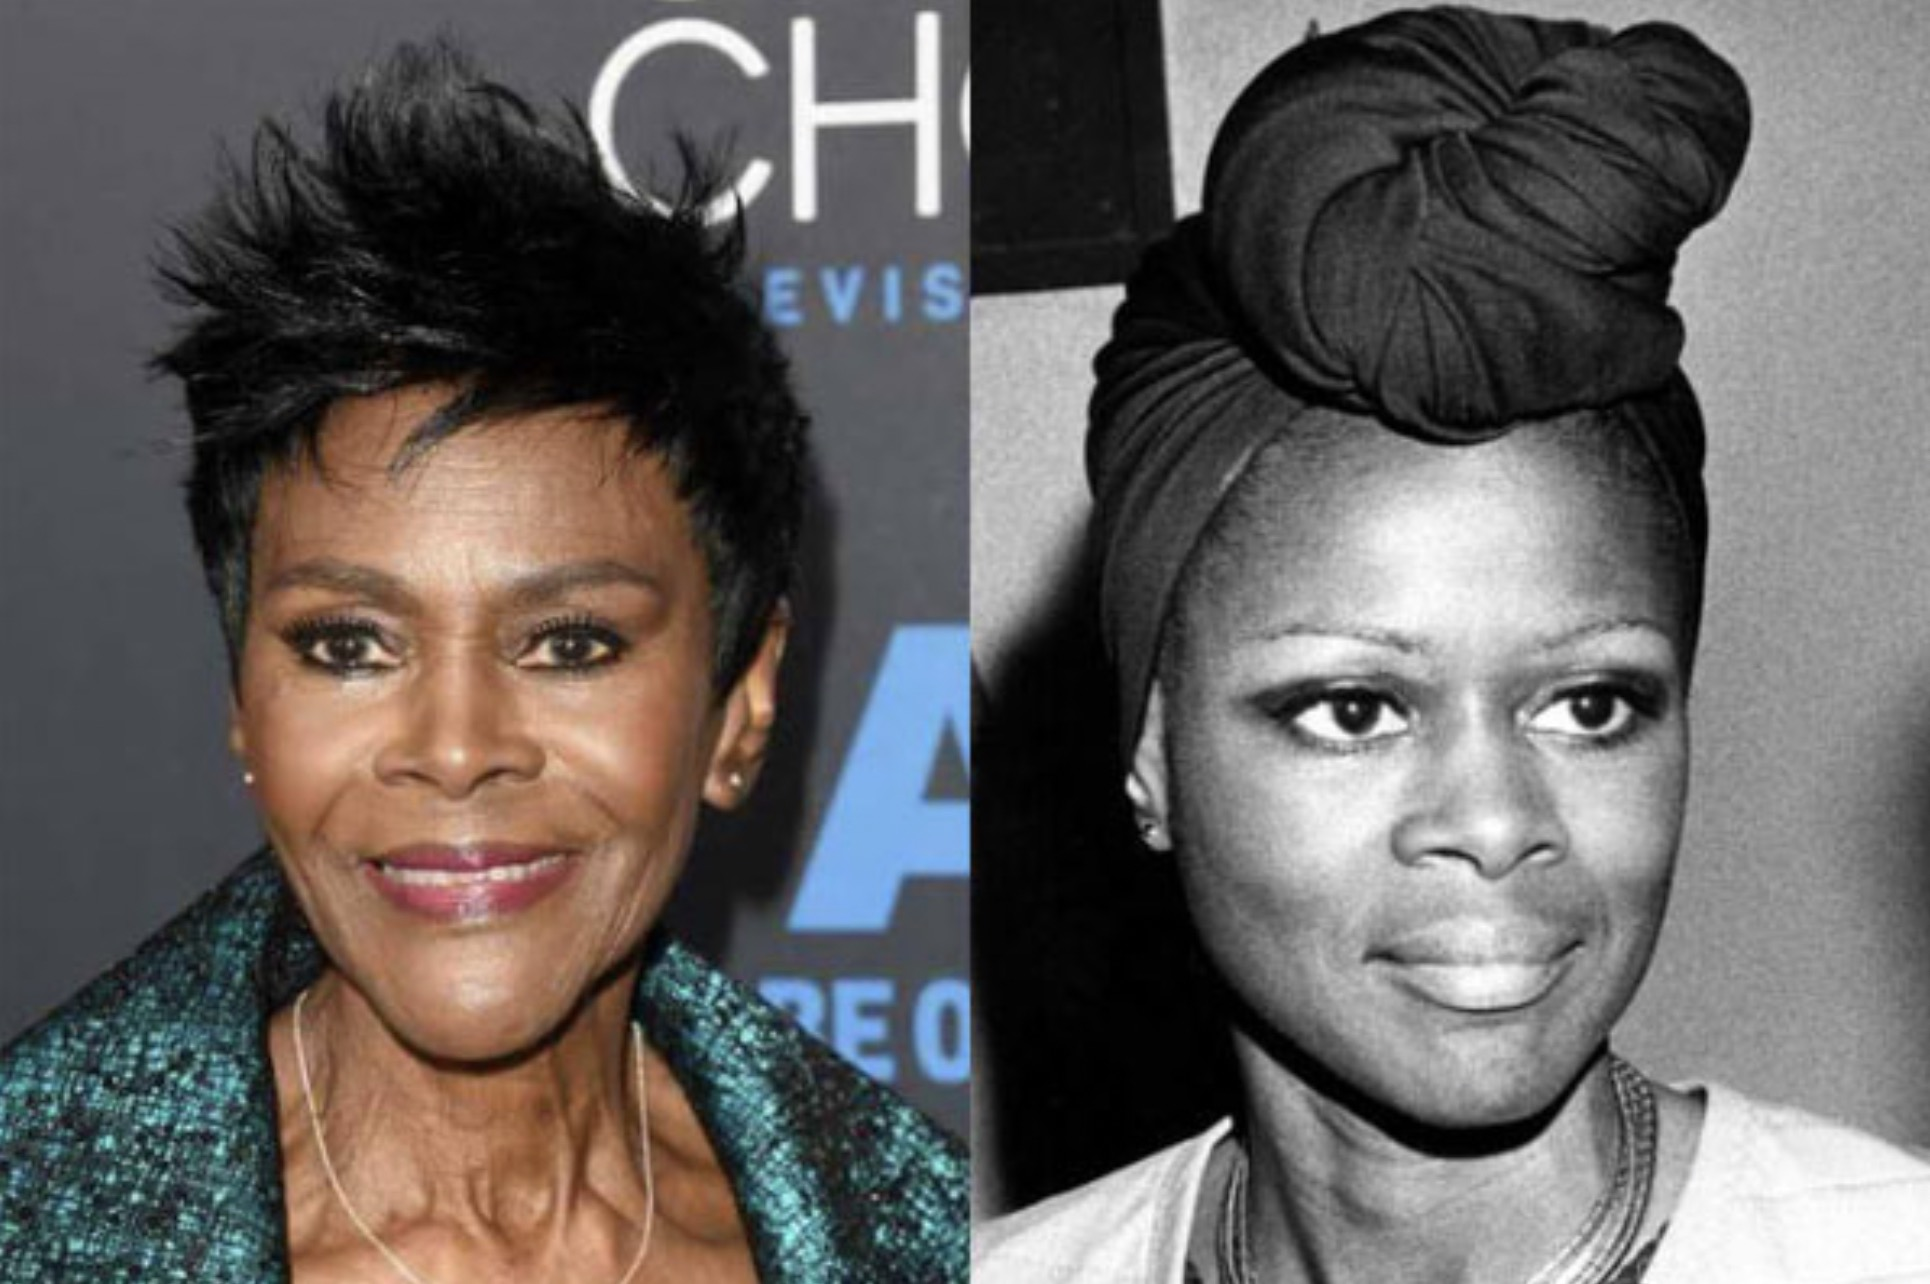 CICELY TYSON 93 YEARS OLD